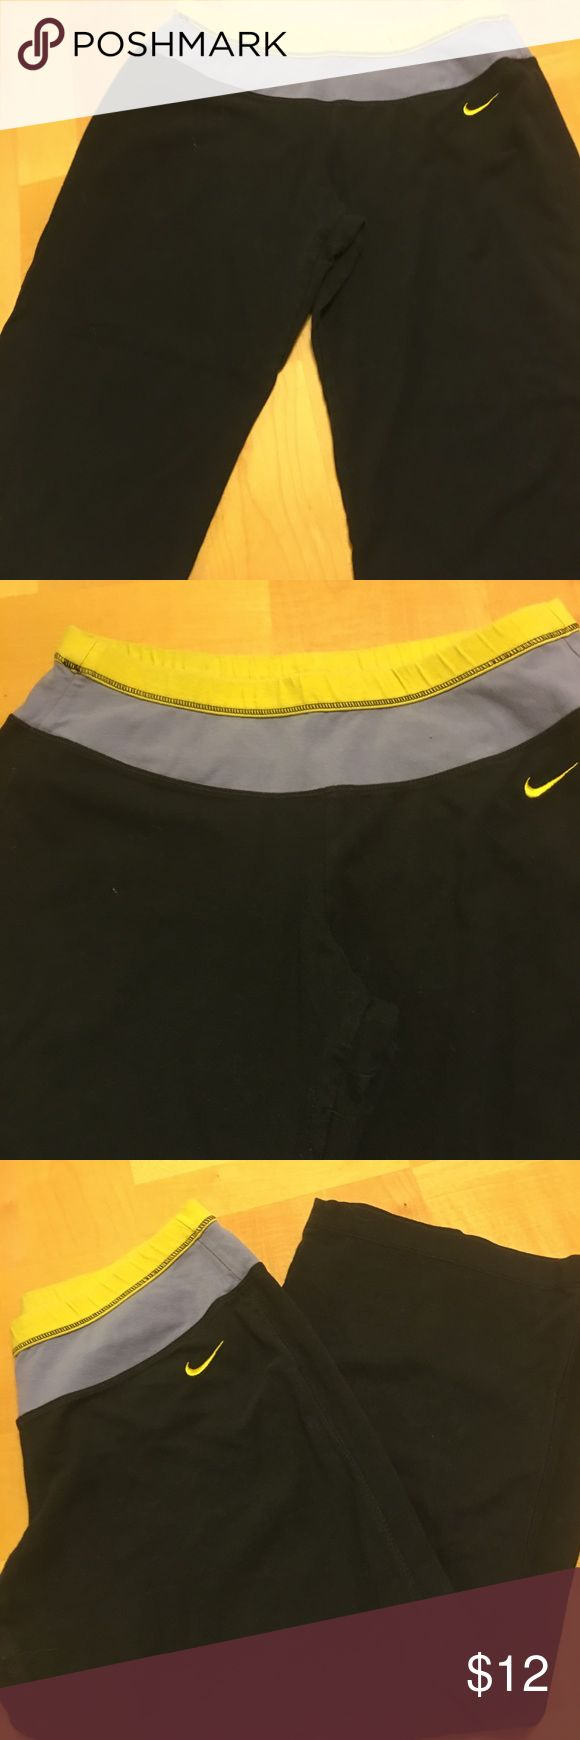 Nike Capri style work out pants Gently worn but very cute. Very comfortable 93 percent cotton 7 percent spandex.  Medium 8/10. Nike Pants Capris